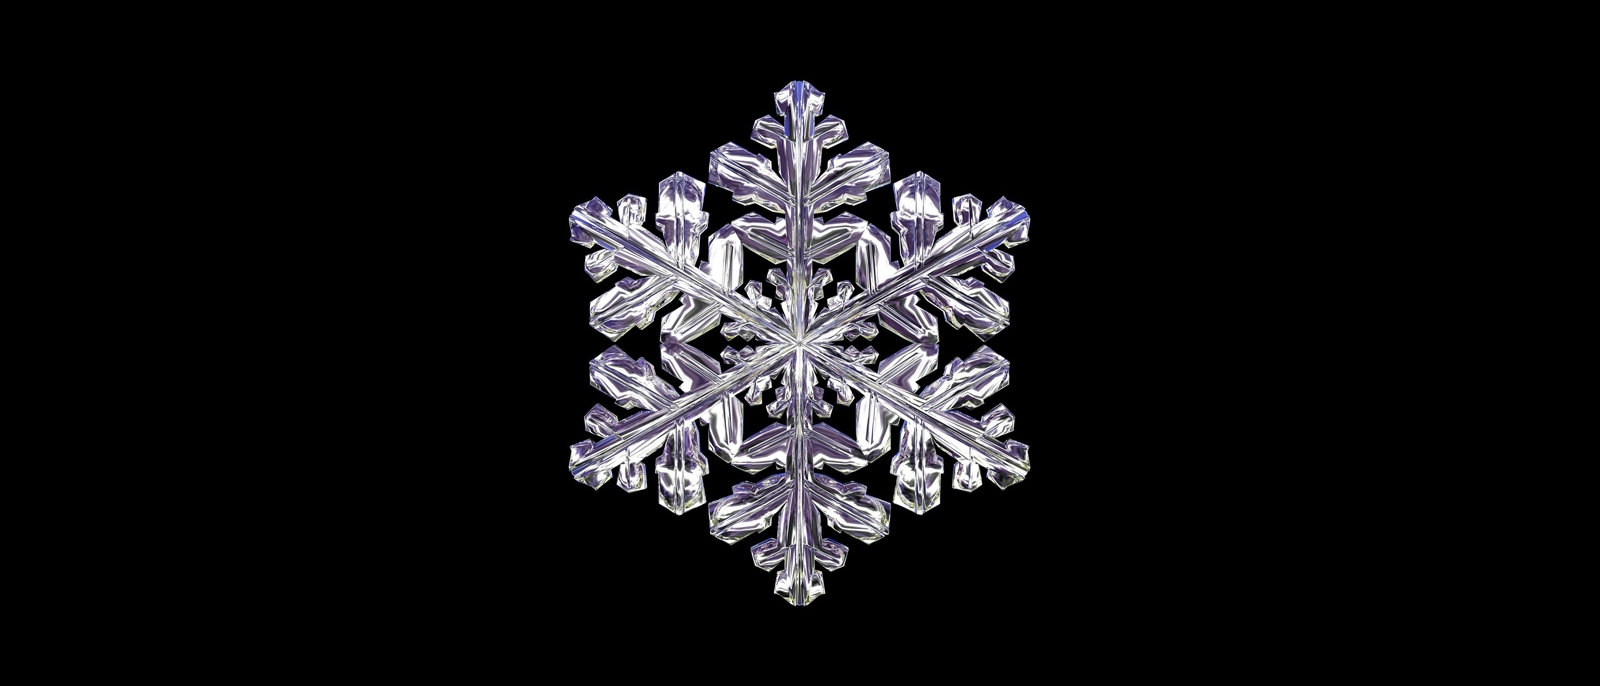 Snowflakes Symbols Of Individual Perfection Aleph